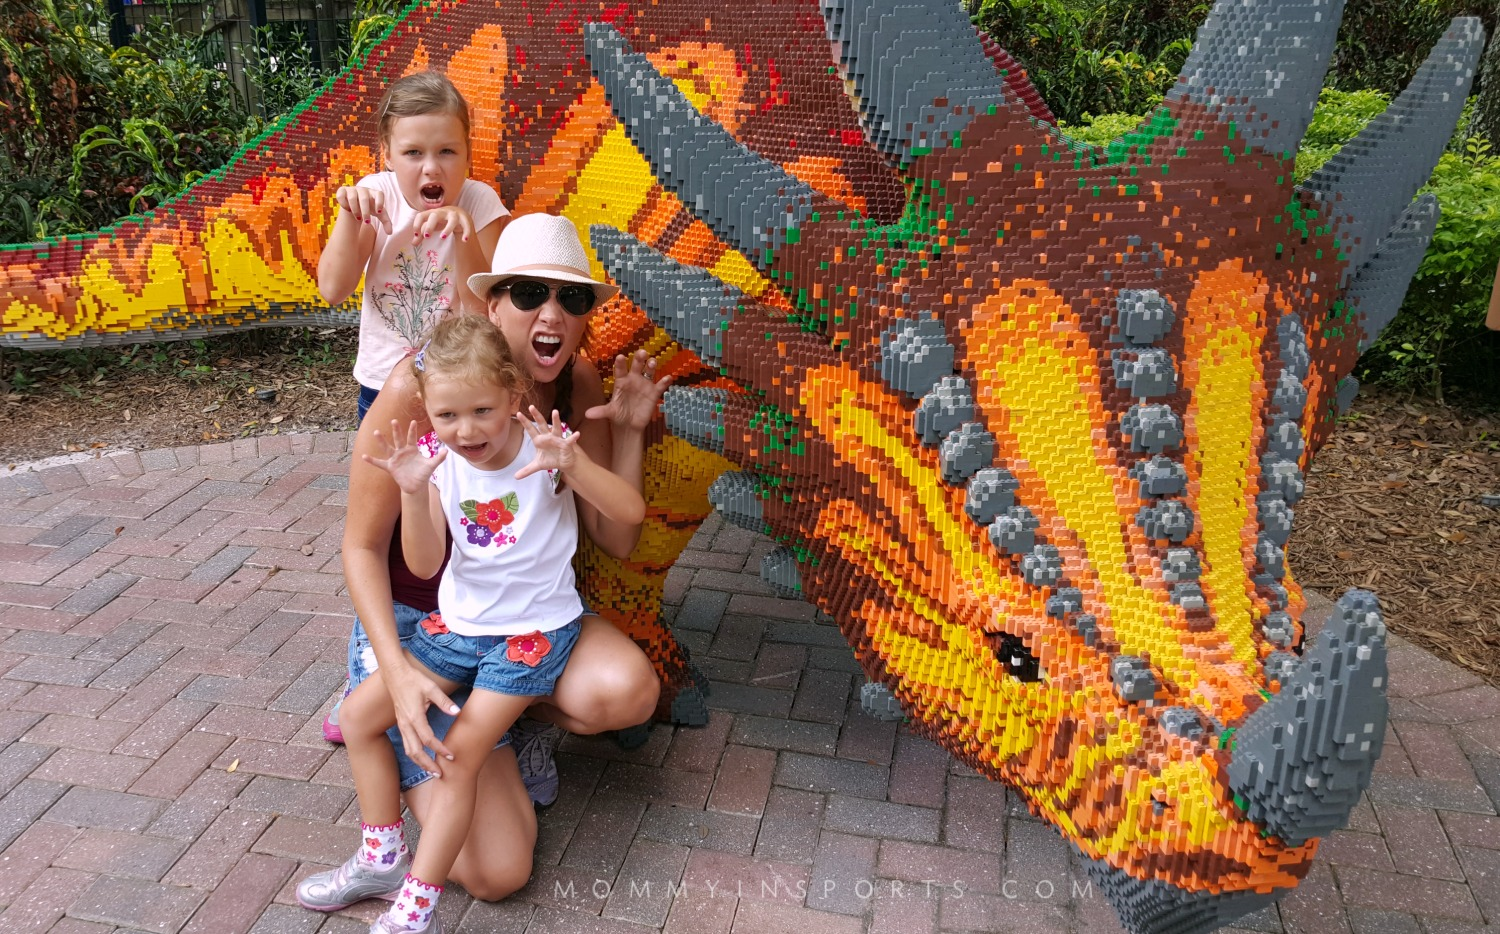 oing on a big trip with your kids? Follow these five tips to avoid vacation hell with kids, and have a great time! Good luck!